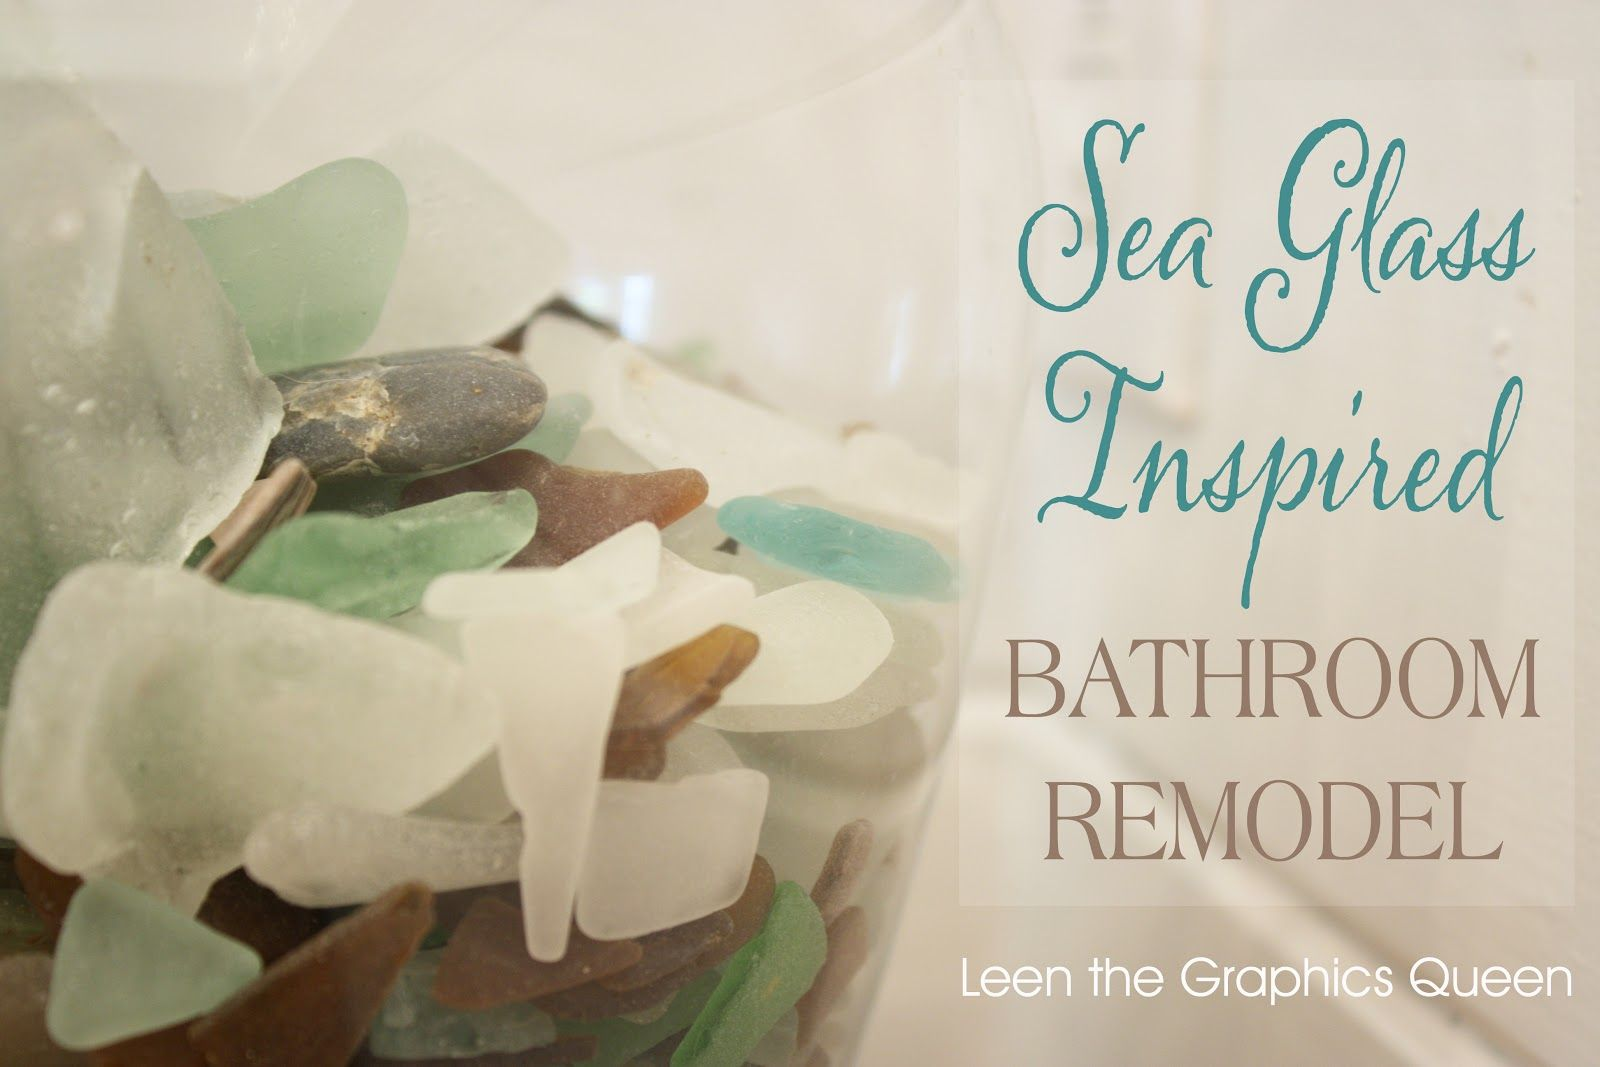 Sea Glass Inspired Bathroom Leen the Graphics Queen | Our home ...